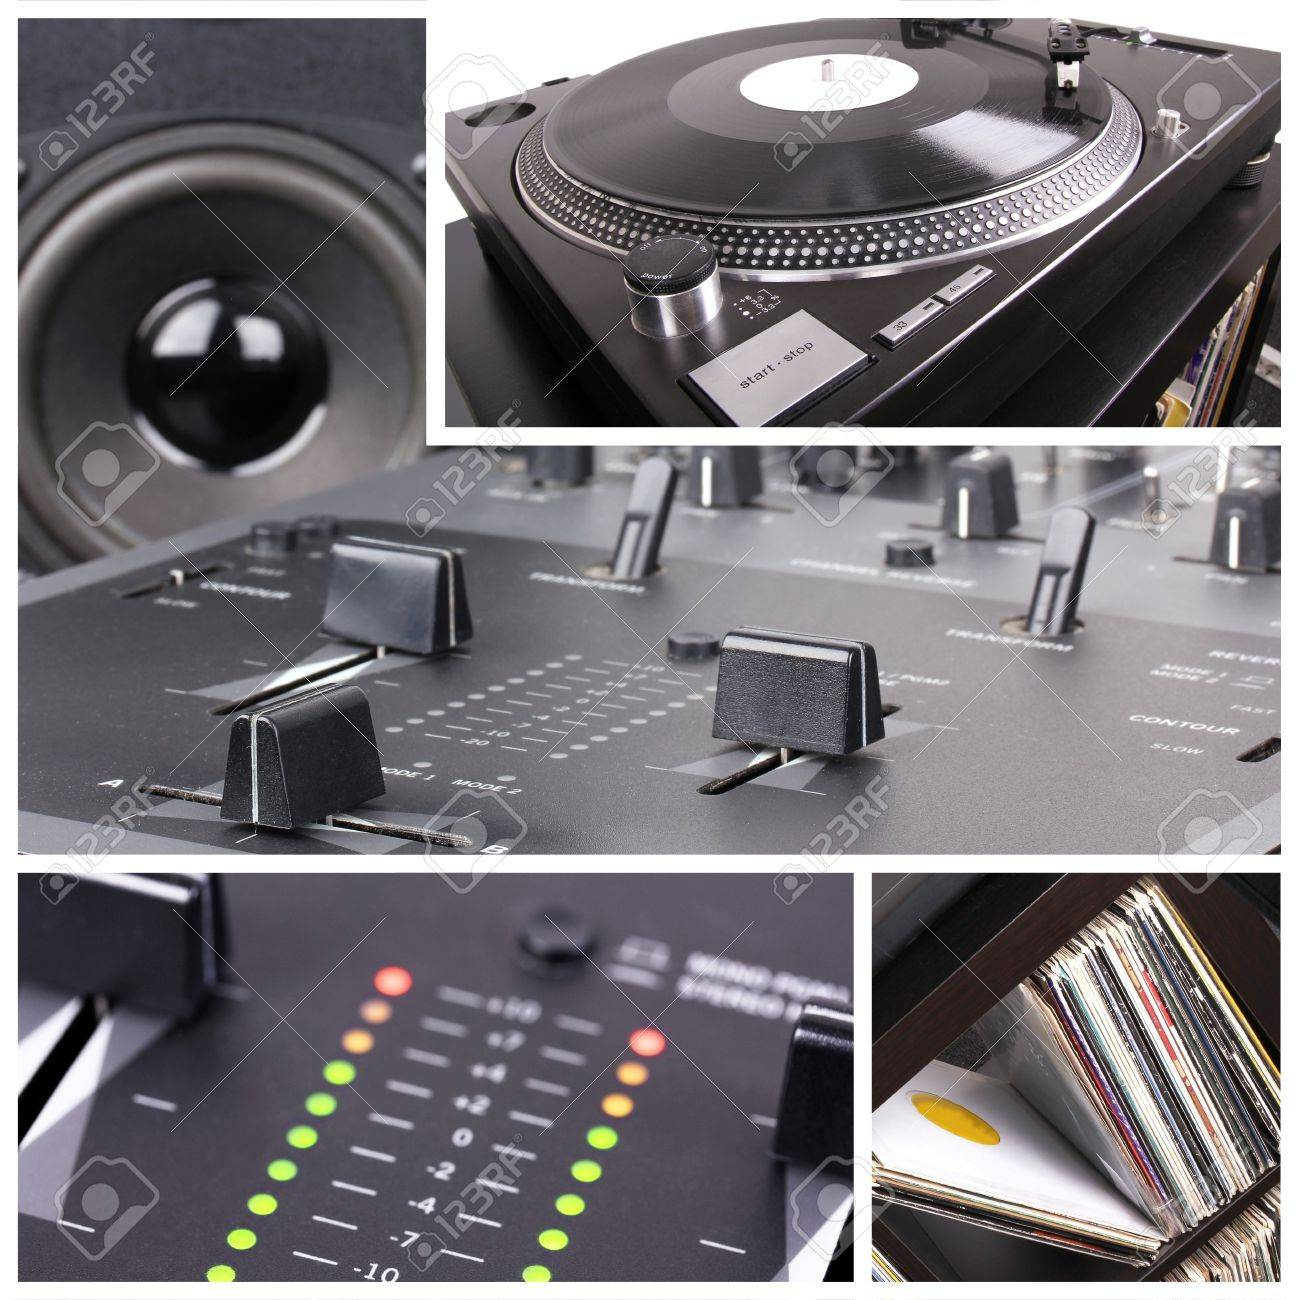 Dj equipment collage. Turntable and mixer parts Stock Photo - 8861434